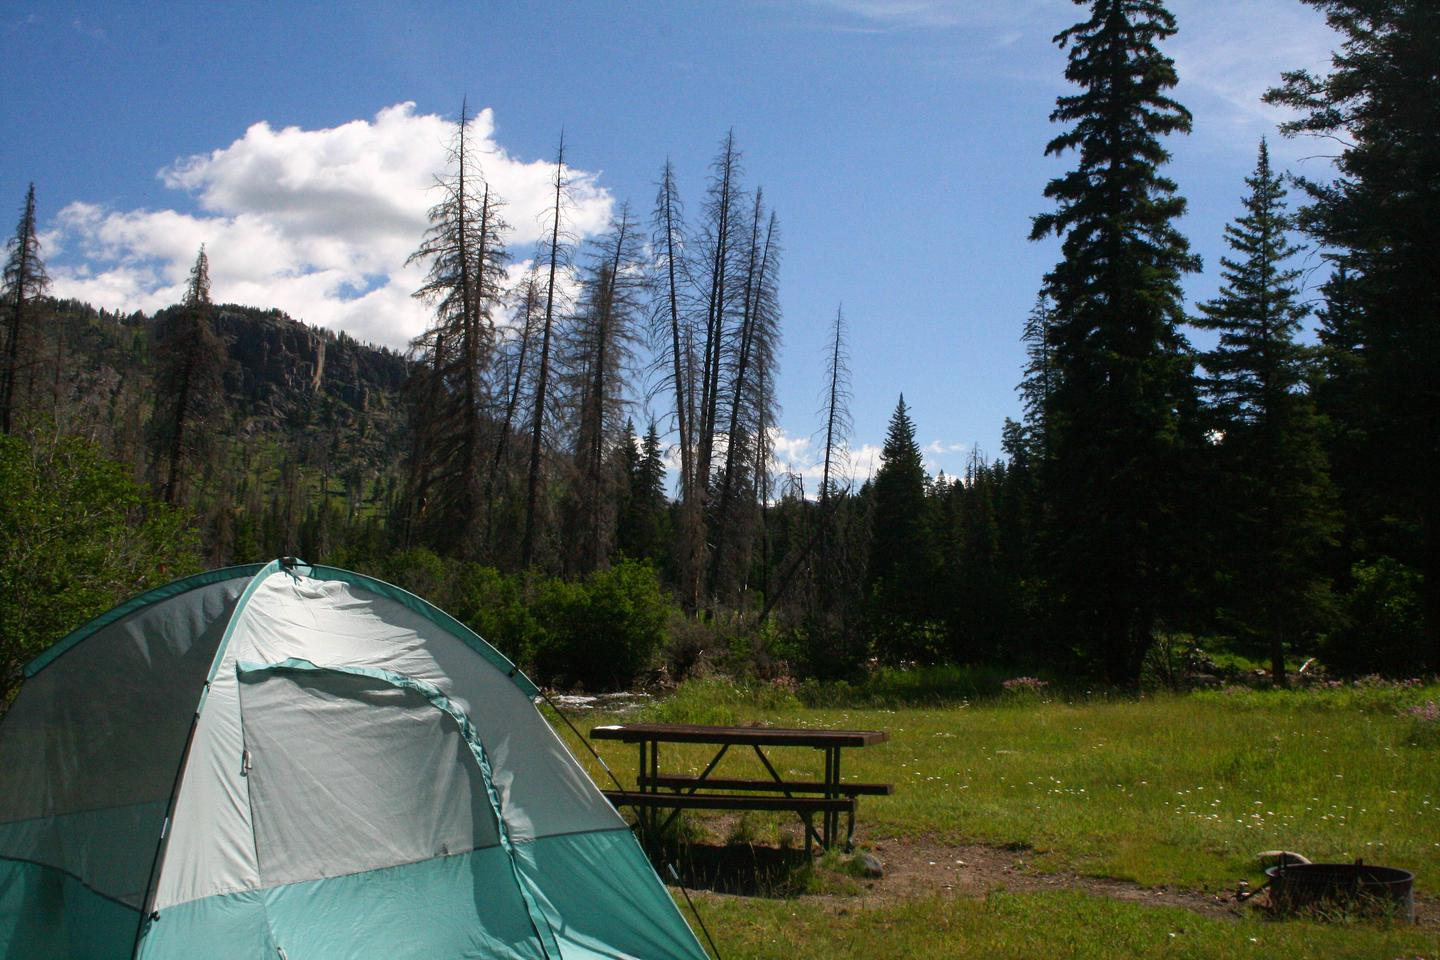 Slough Creek Campground site #5